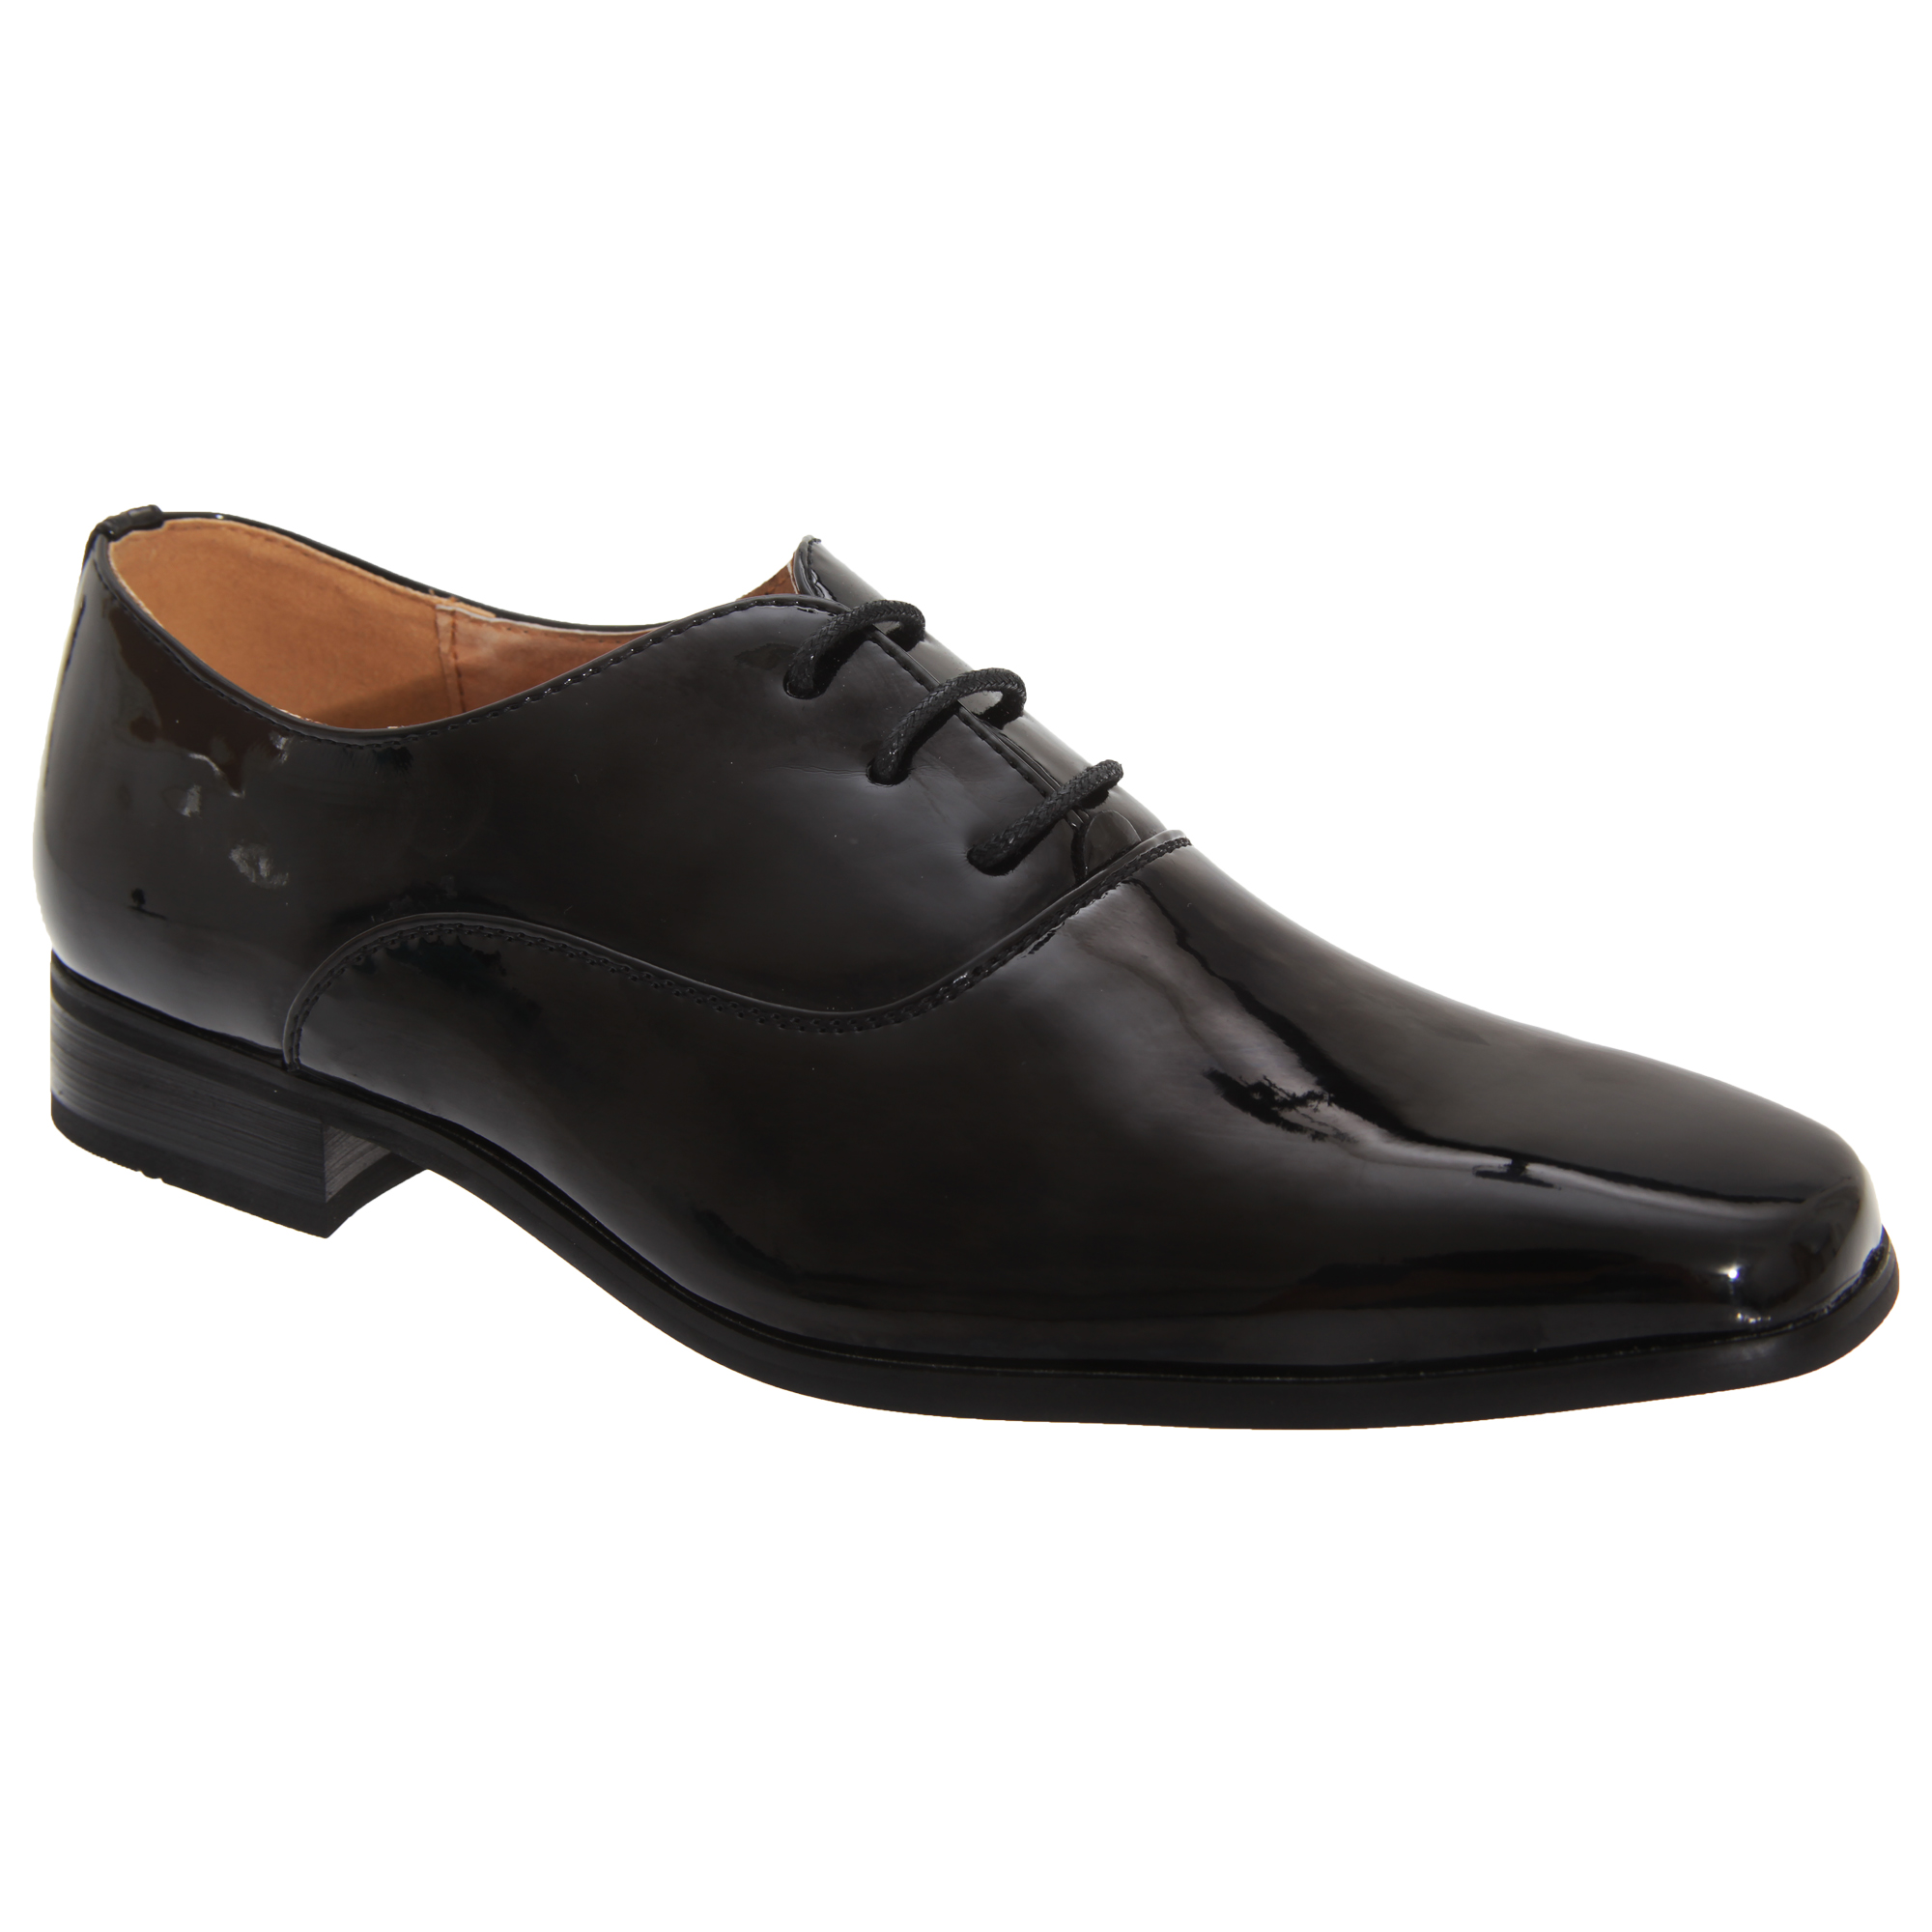 Goor Older Boys Patent Leather Lace-Up Oxford Tie Dress Shoes (5 UK) (Black Patent)